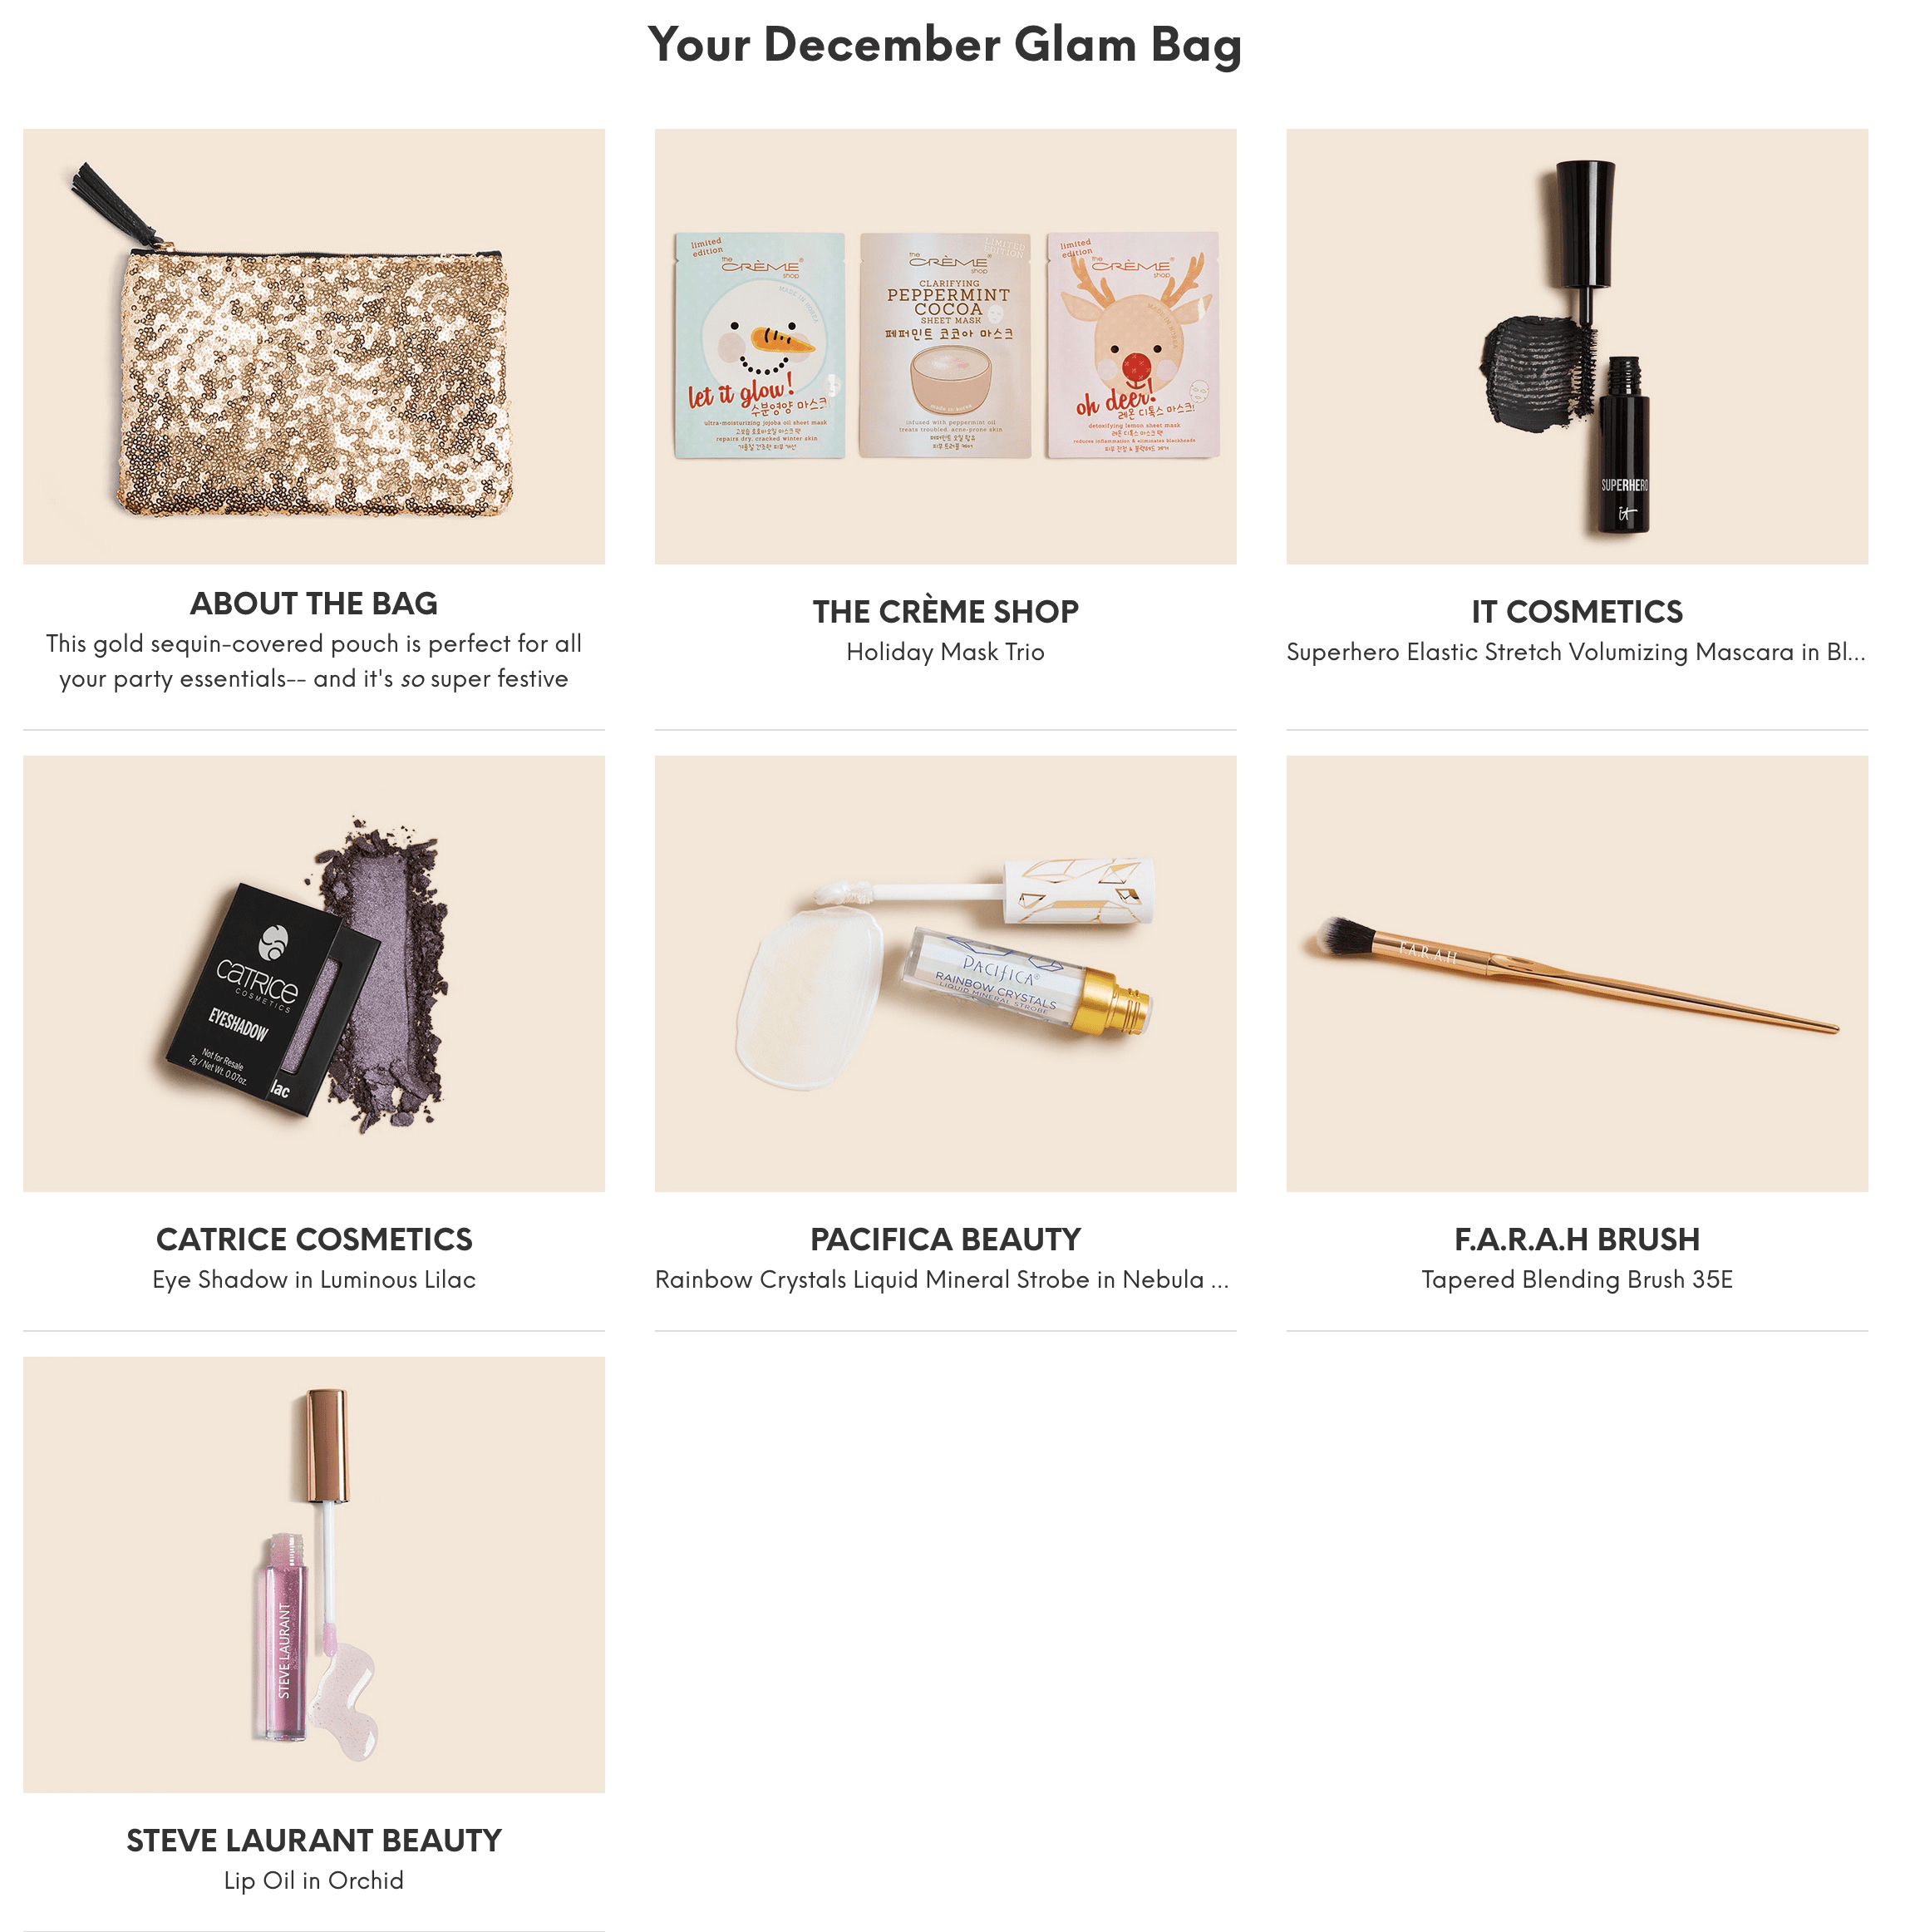 Ipsy December 2018 Glam Bag Reveals Available Now!